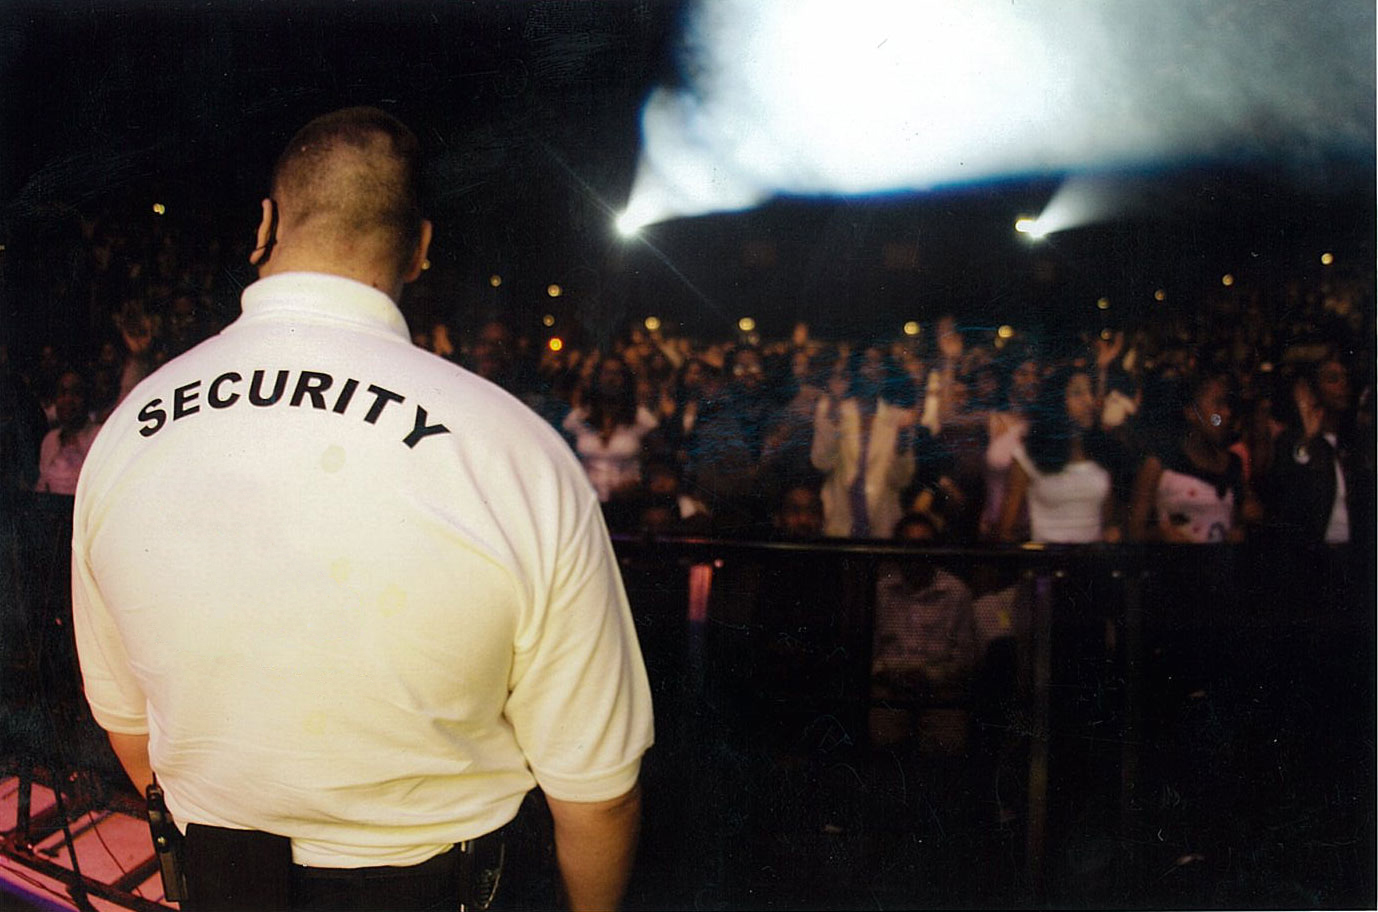 Security Staffs